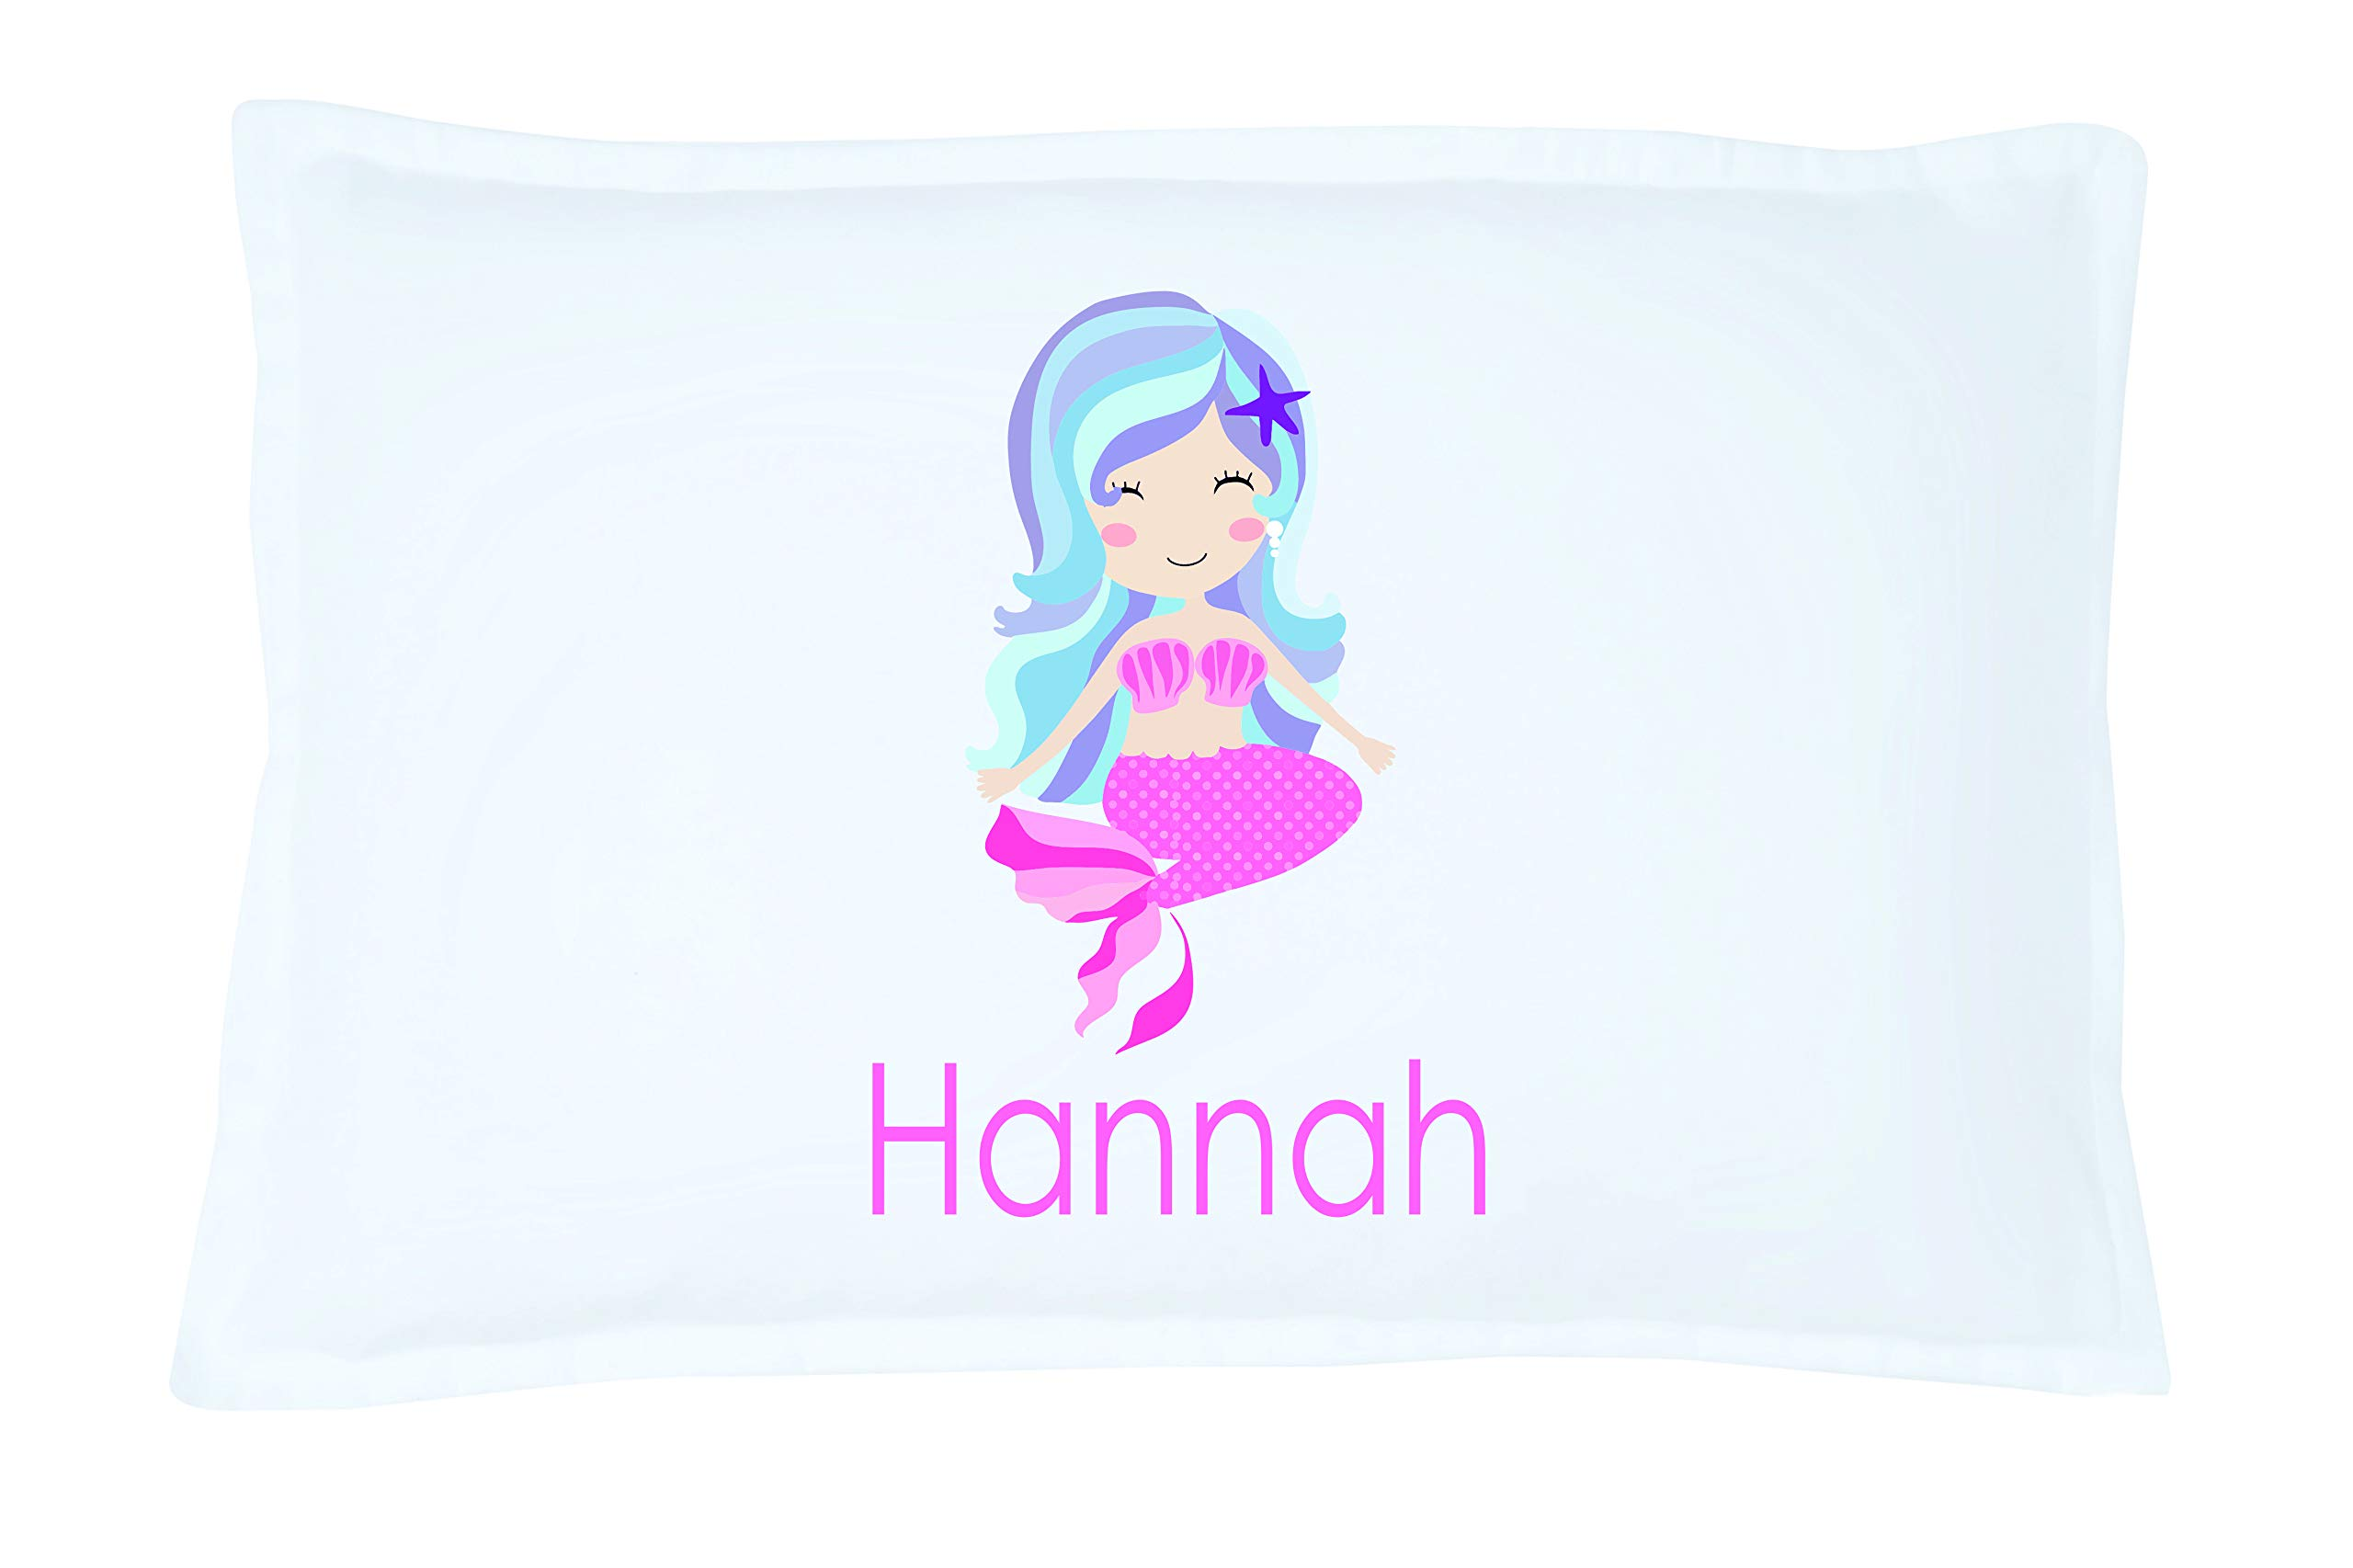 Personalized Kid's Purple Haired Mermaid Pillowcase Microfiber Polyester Standard 20 by 30 Inches, Name Pillow for Girls, Custom Pillowcase, Mermaid Bedding Decor, Little Mermaid Bedding for Girl